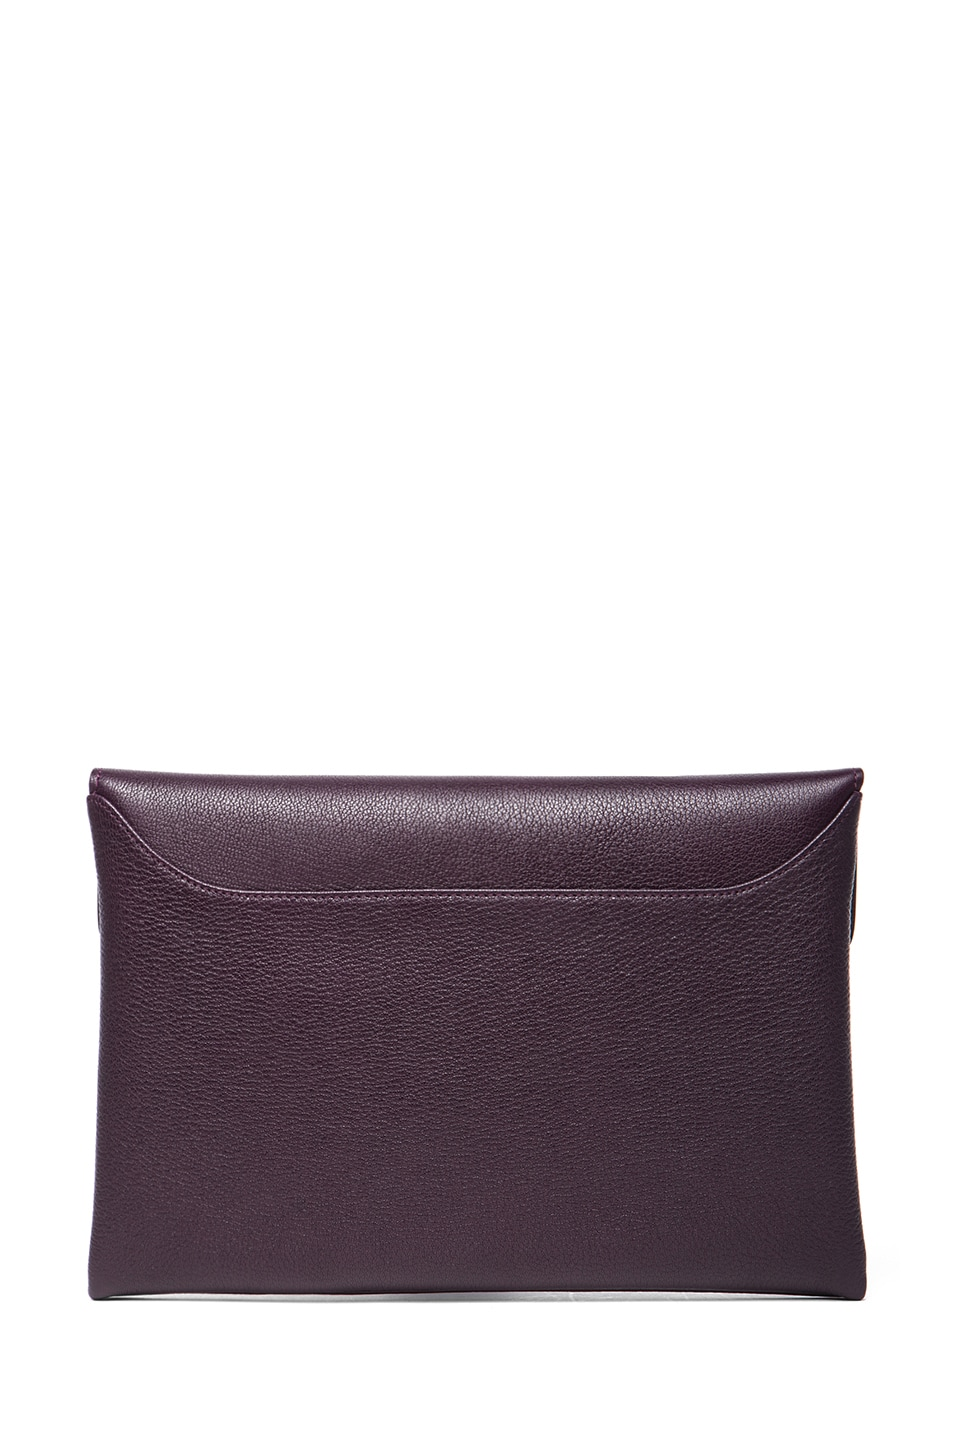 Image 2 of GIVENCHY Medium Antigona Clutch in Aubergine